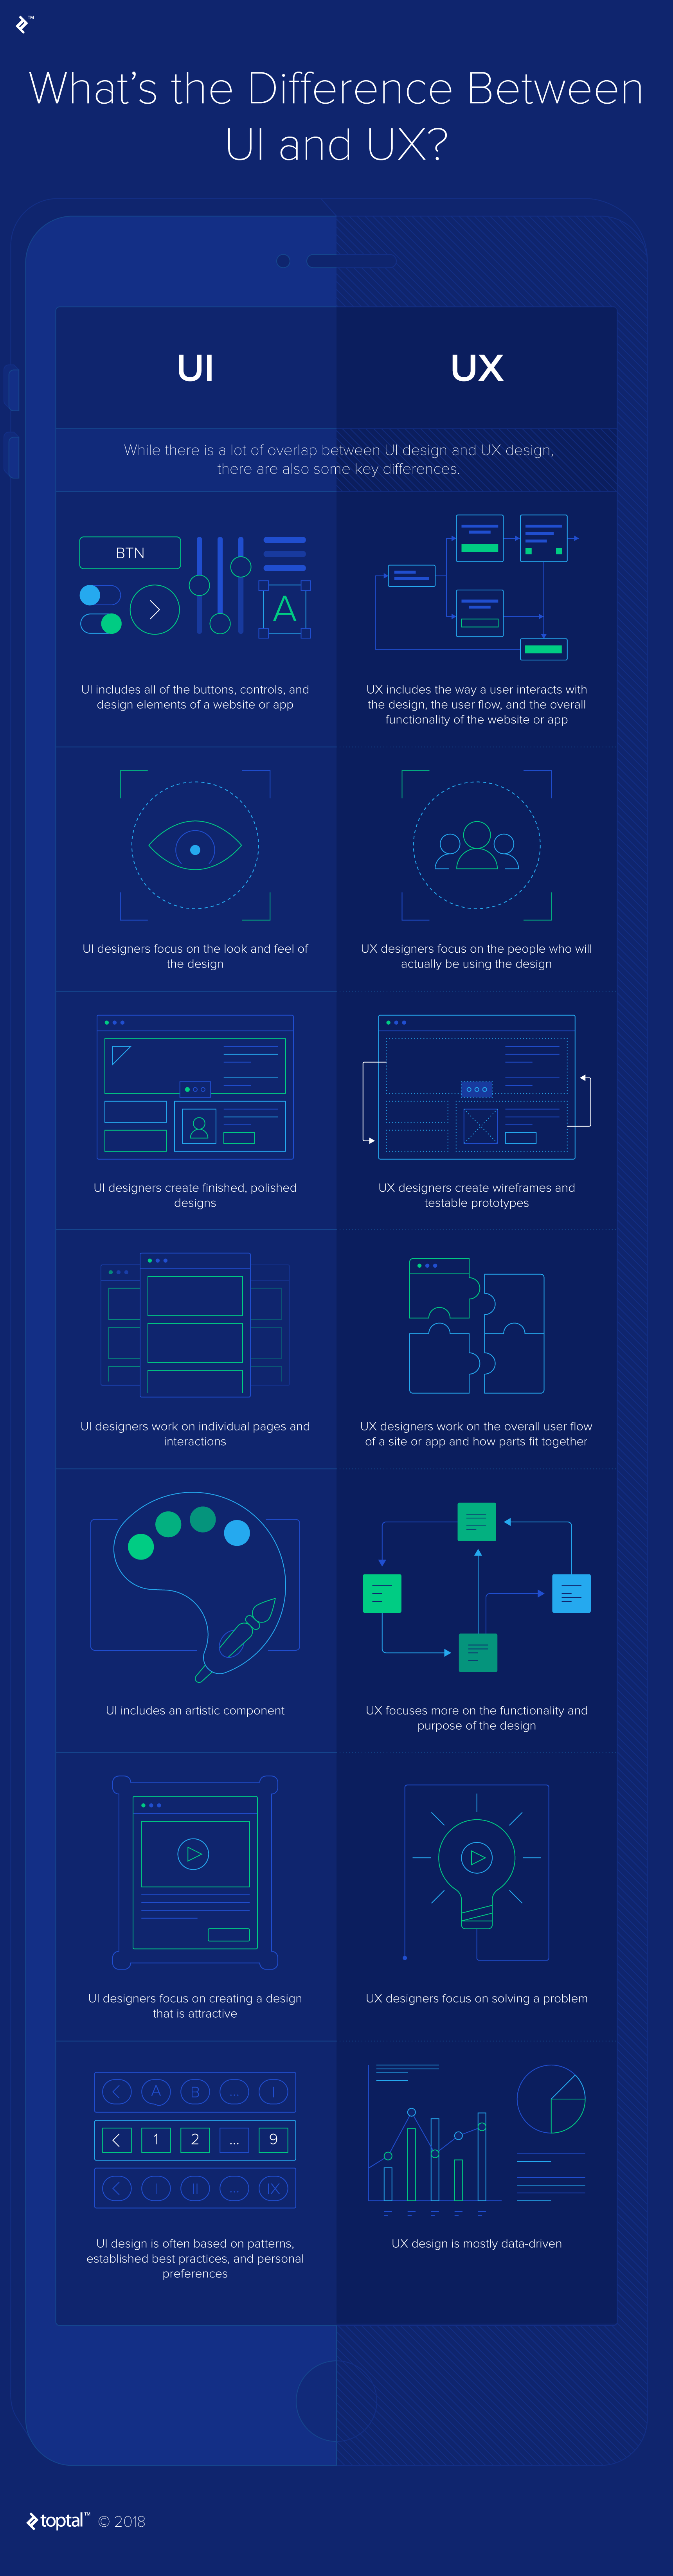 Infographic: UI vs UX - Explore the Core Differences.